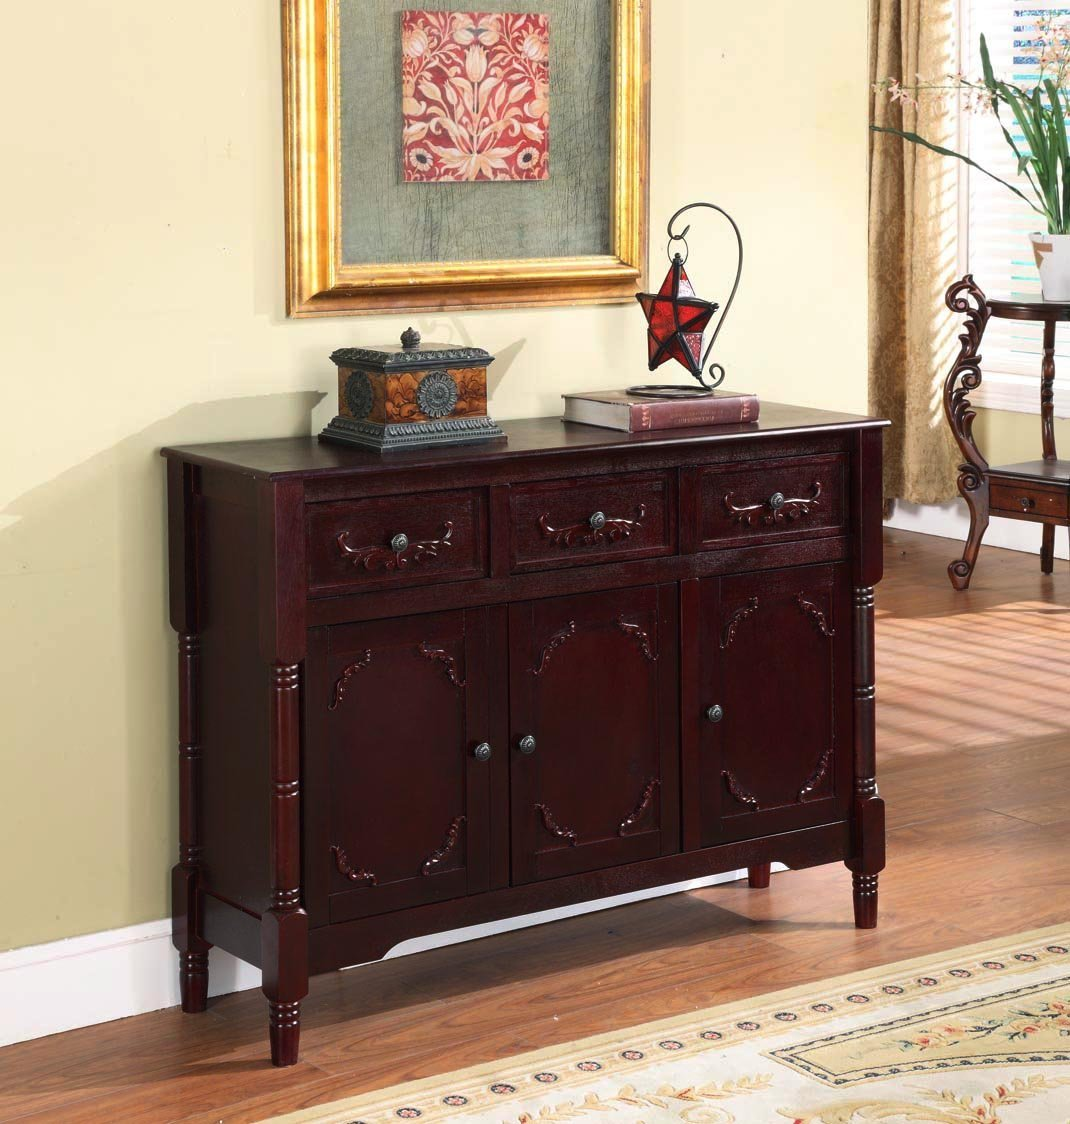 Amazon.com   Kingu0027s Brand R1021 Wood Console Sideboard Table With Drawers  And Storage, Cherry Finish   Buffets U0026 Sideboards